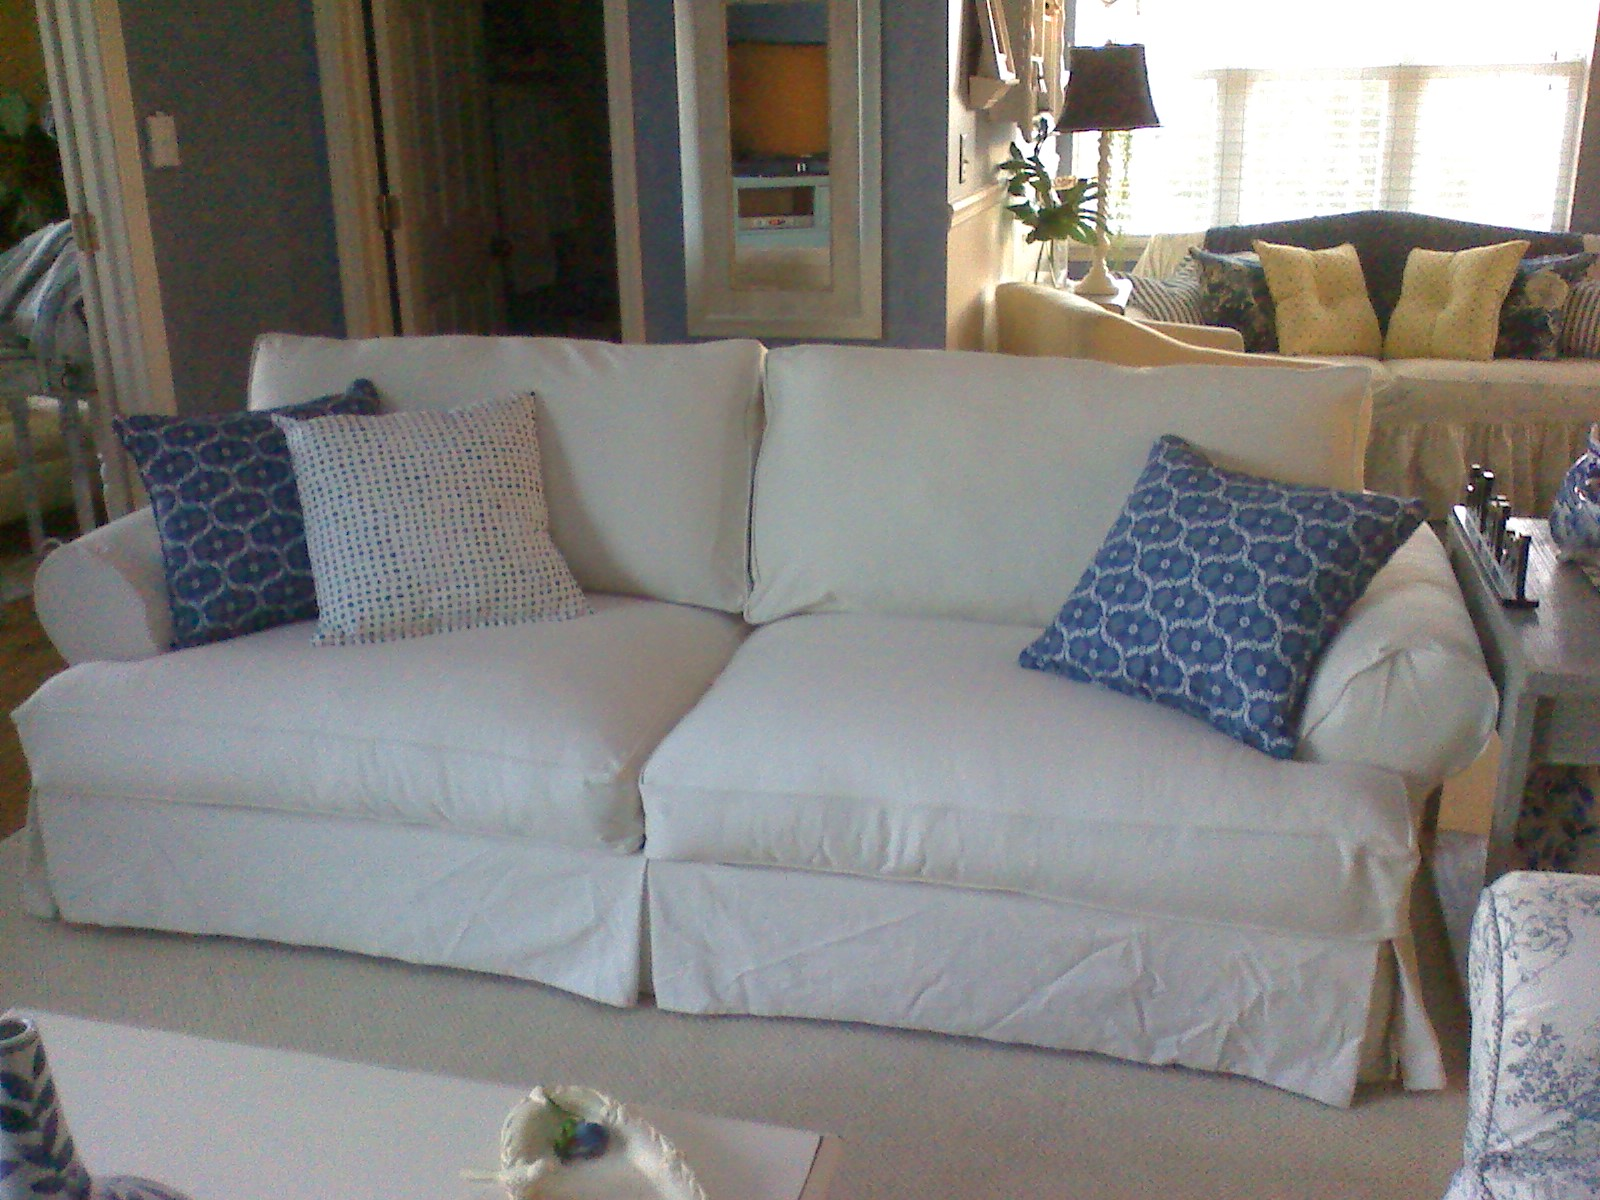 Replacement Slipcover Outlet Slipcovers For Famous Furniture